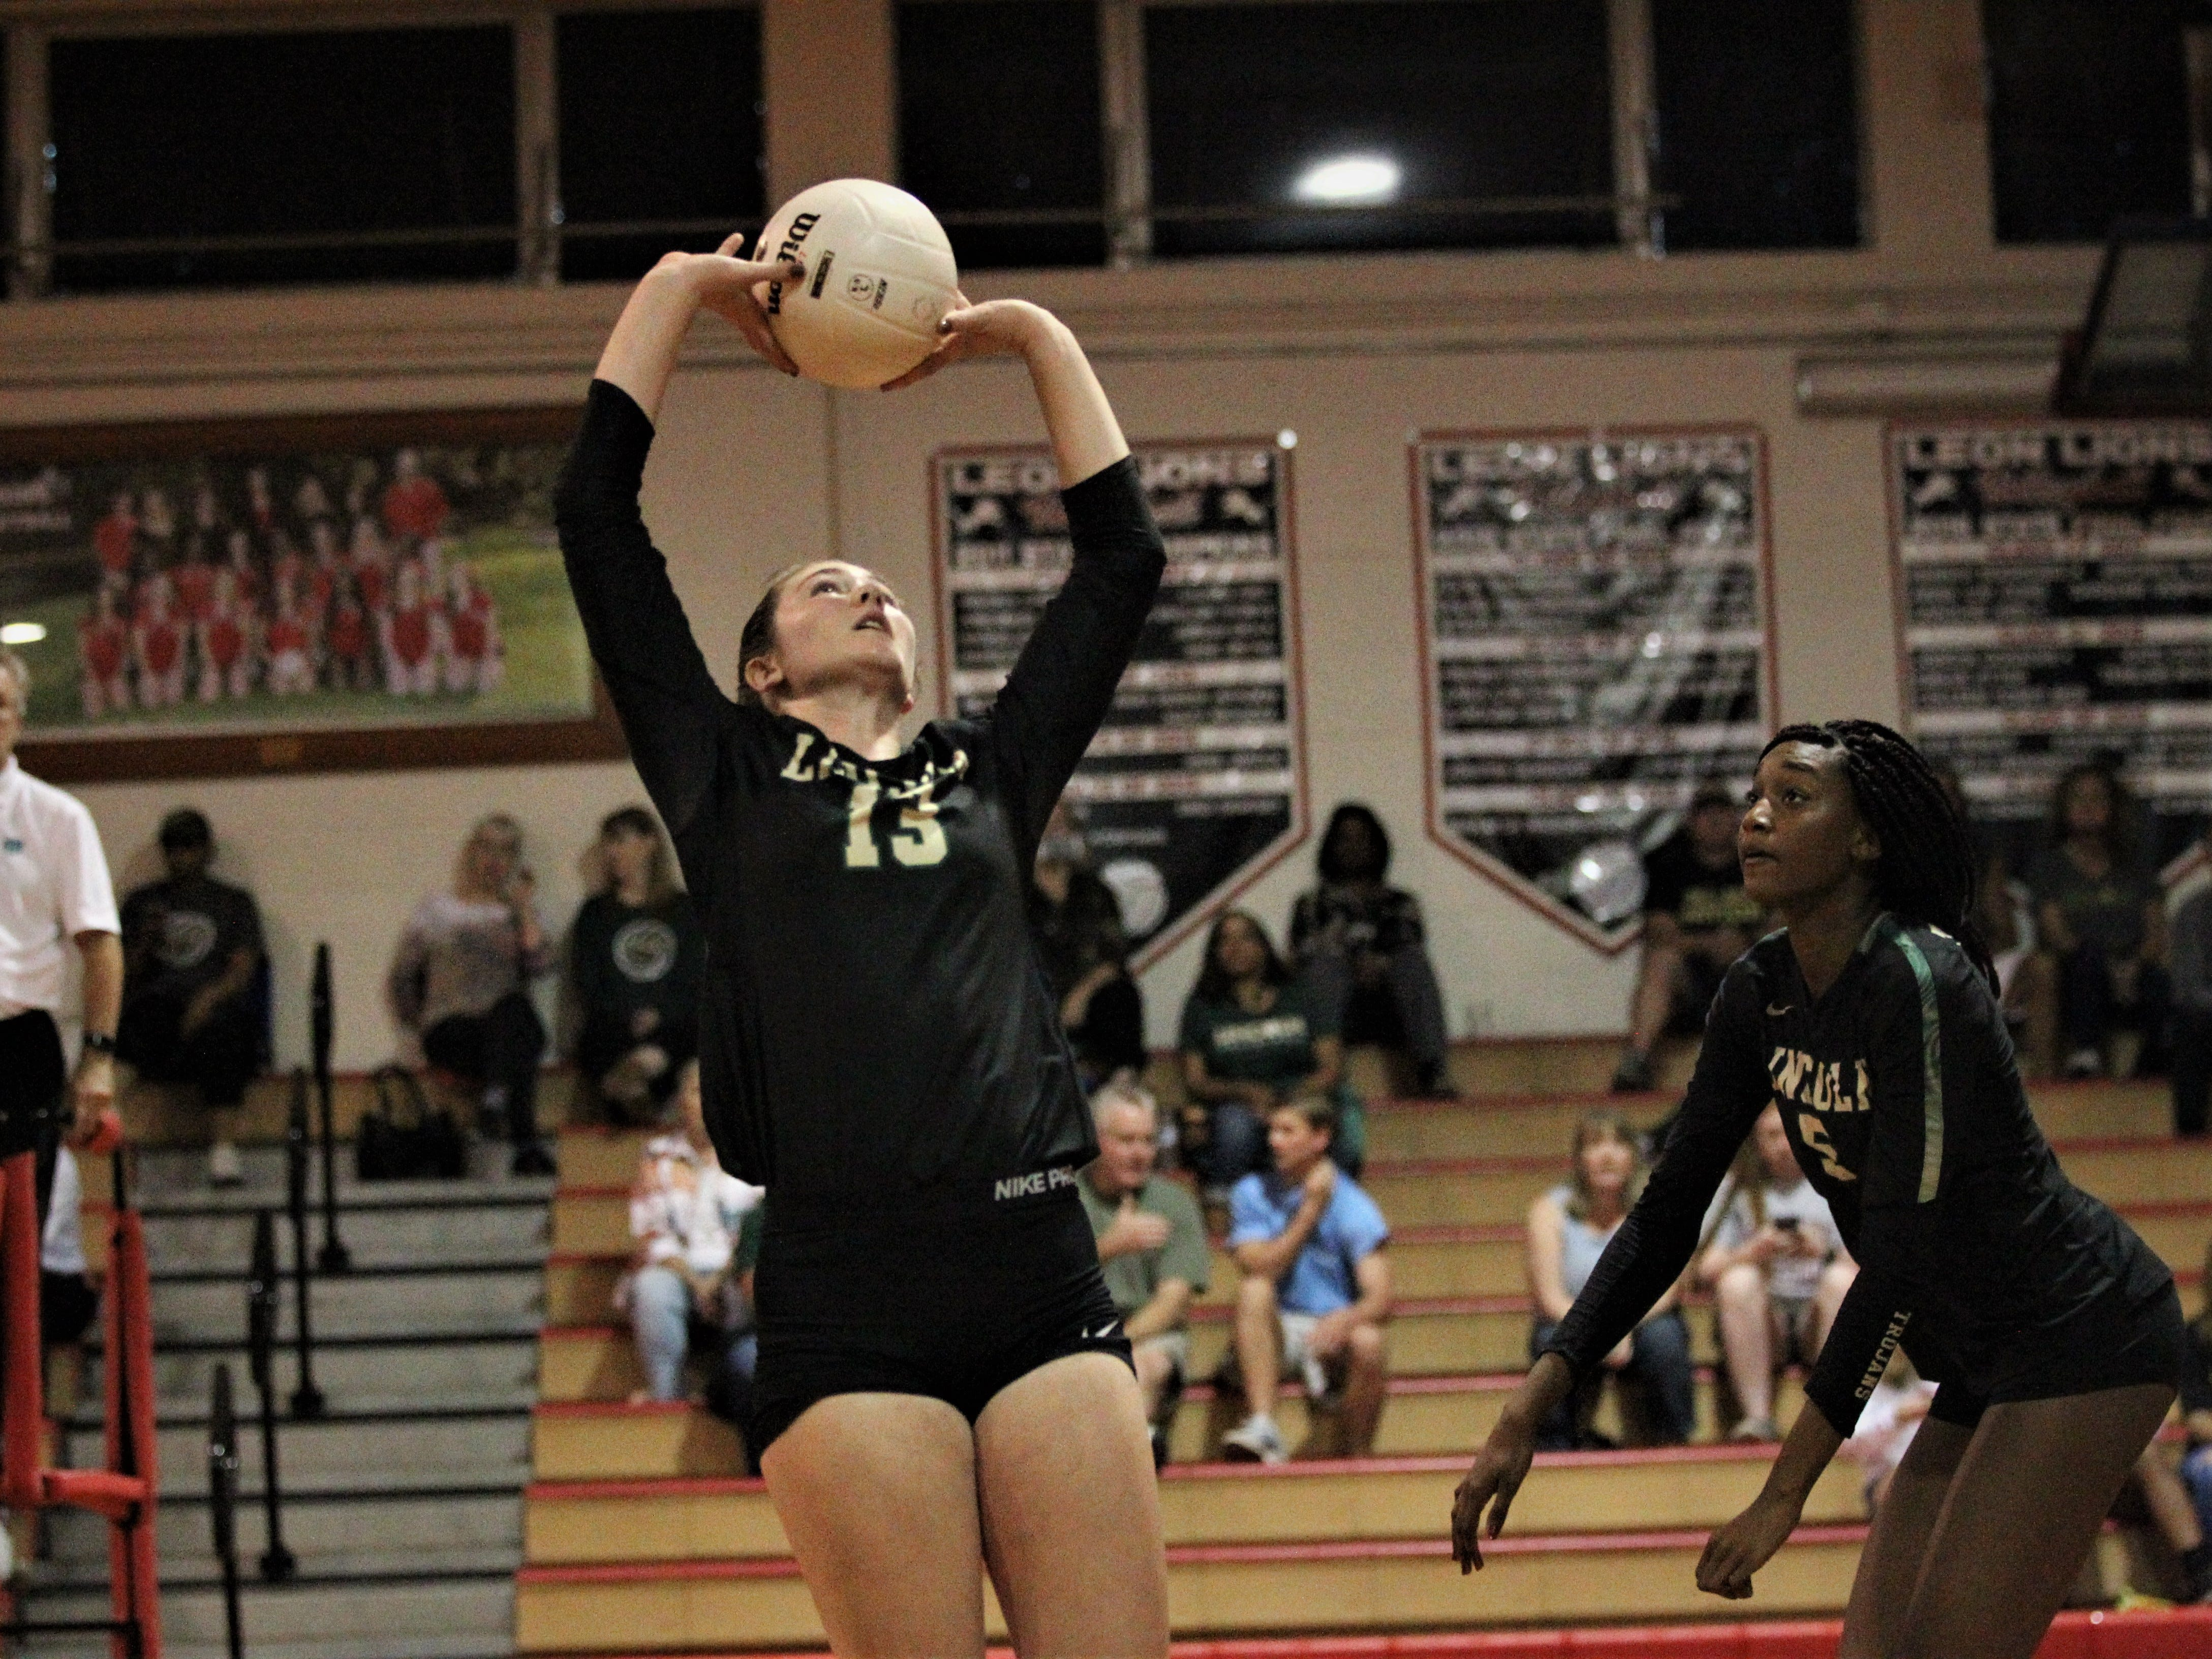 Lincoln senior setter Loren Scott sets a ball for Khori Louis. Chiles beat Lincoln 3-0 in a District 2-8A semifinal on Tuesday at Leon.